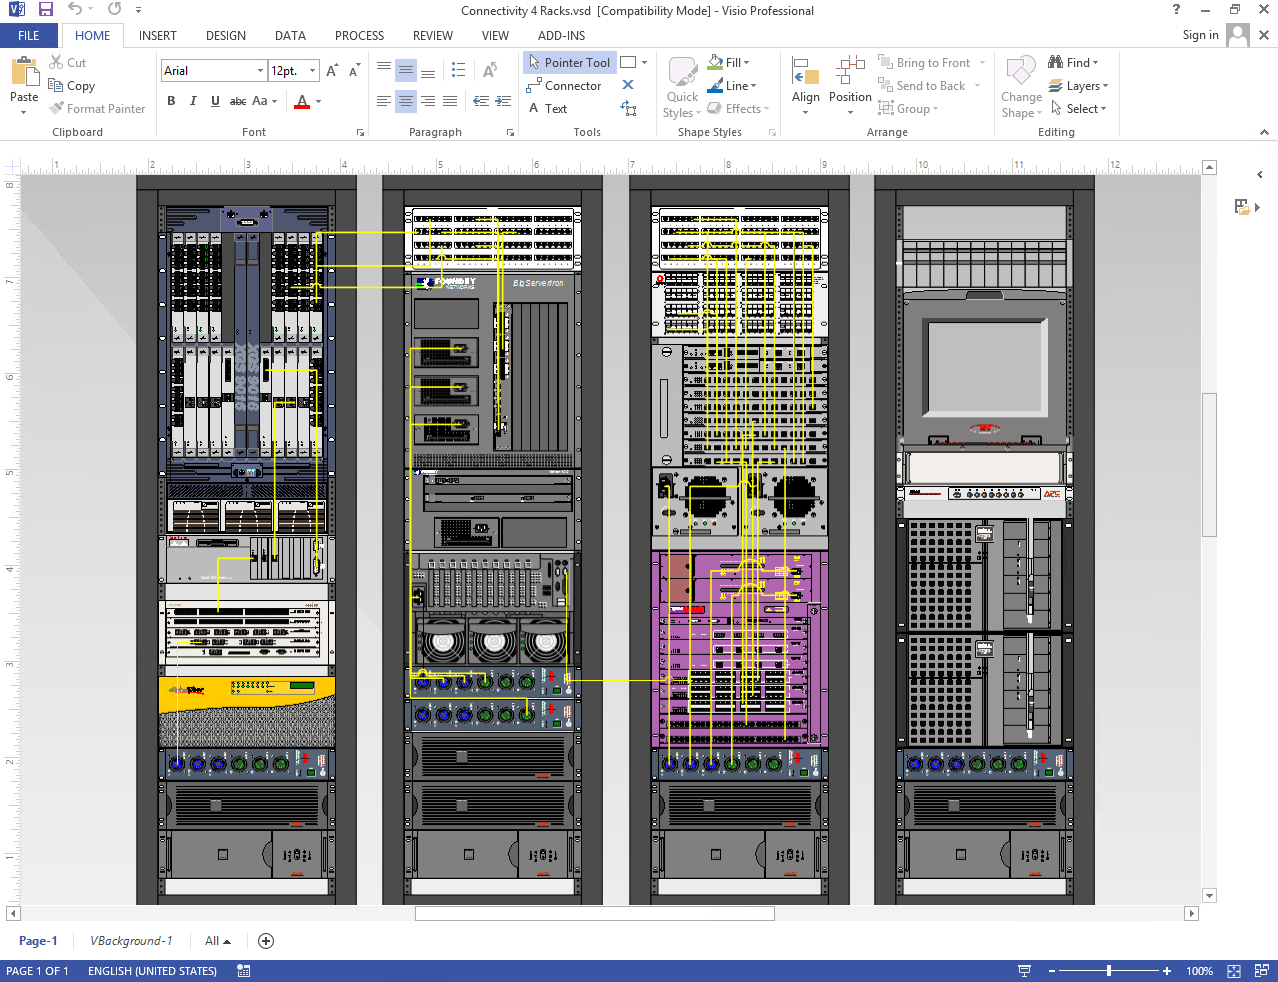 Netzoom visio stencils diagram of data center rack elevations depicting connections within and between racks using netzoom visio stencils asfbconference2016 Image collections